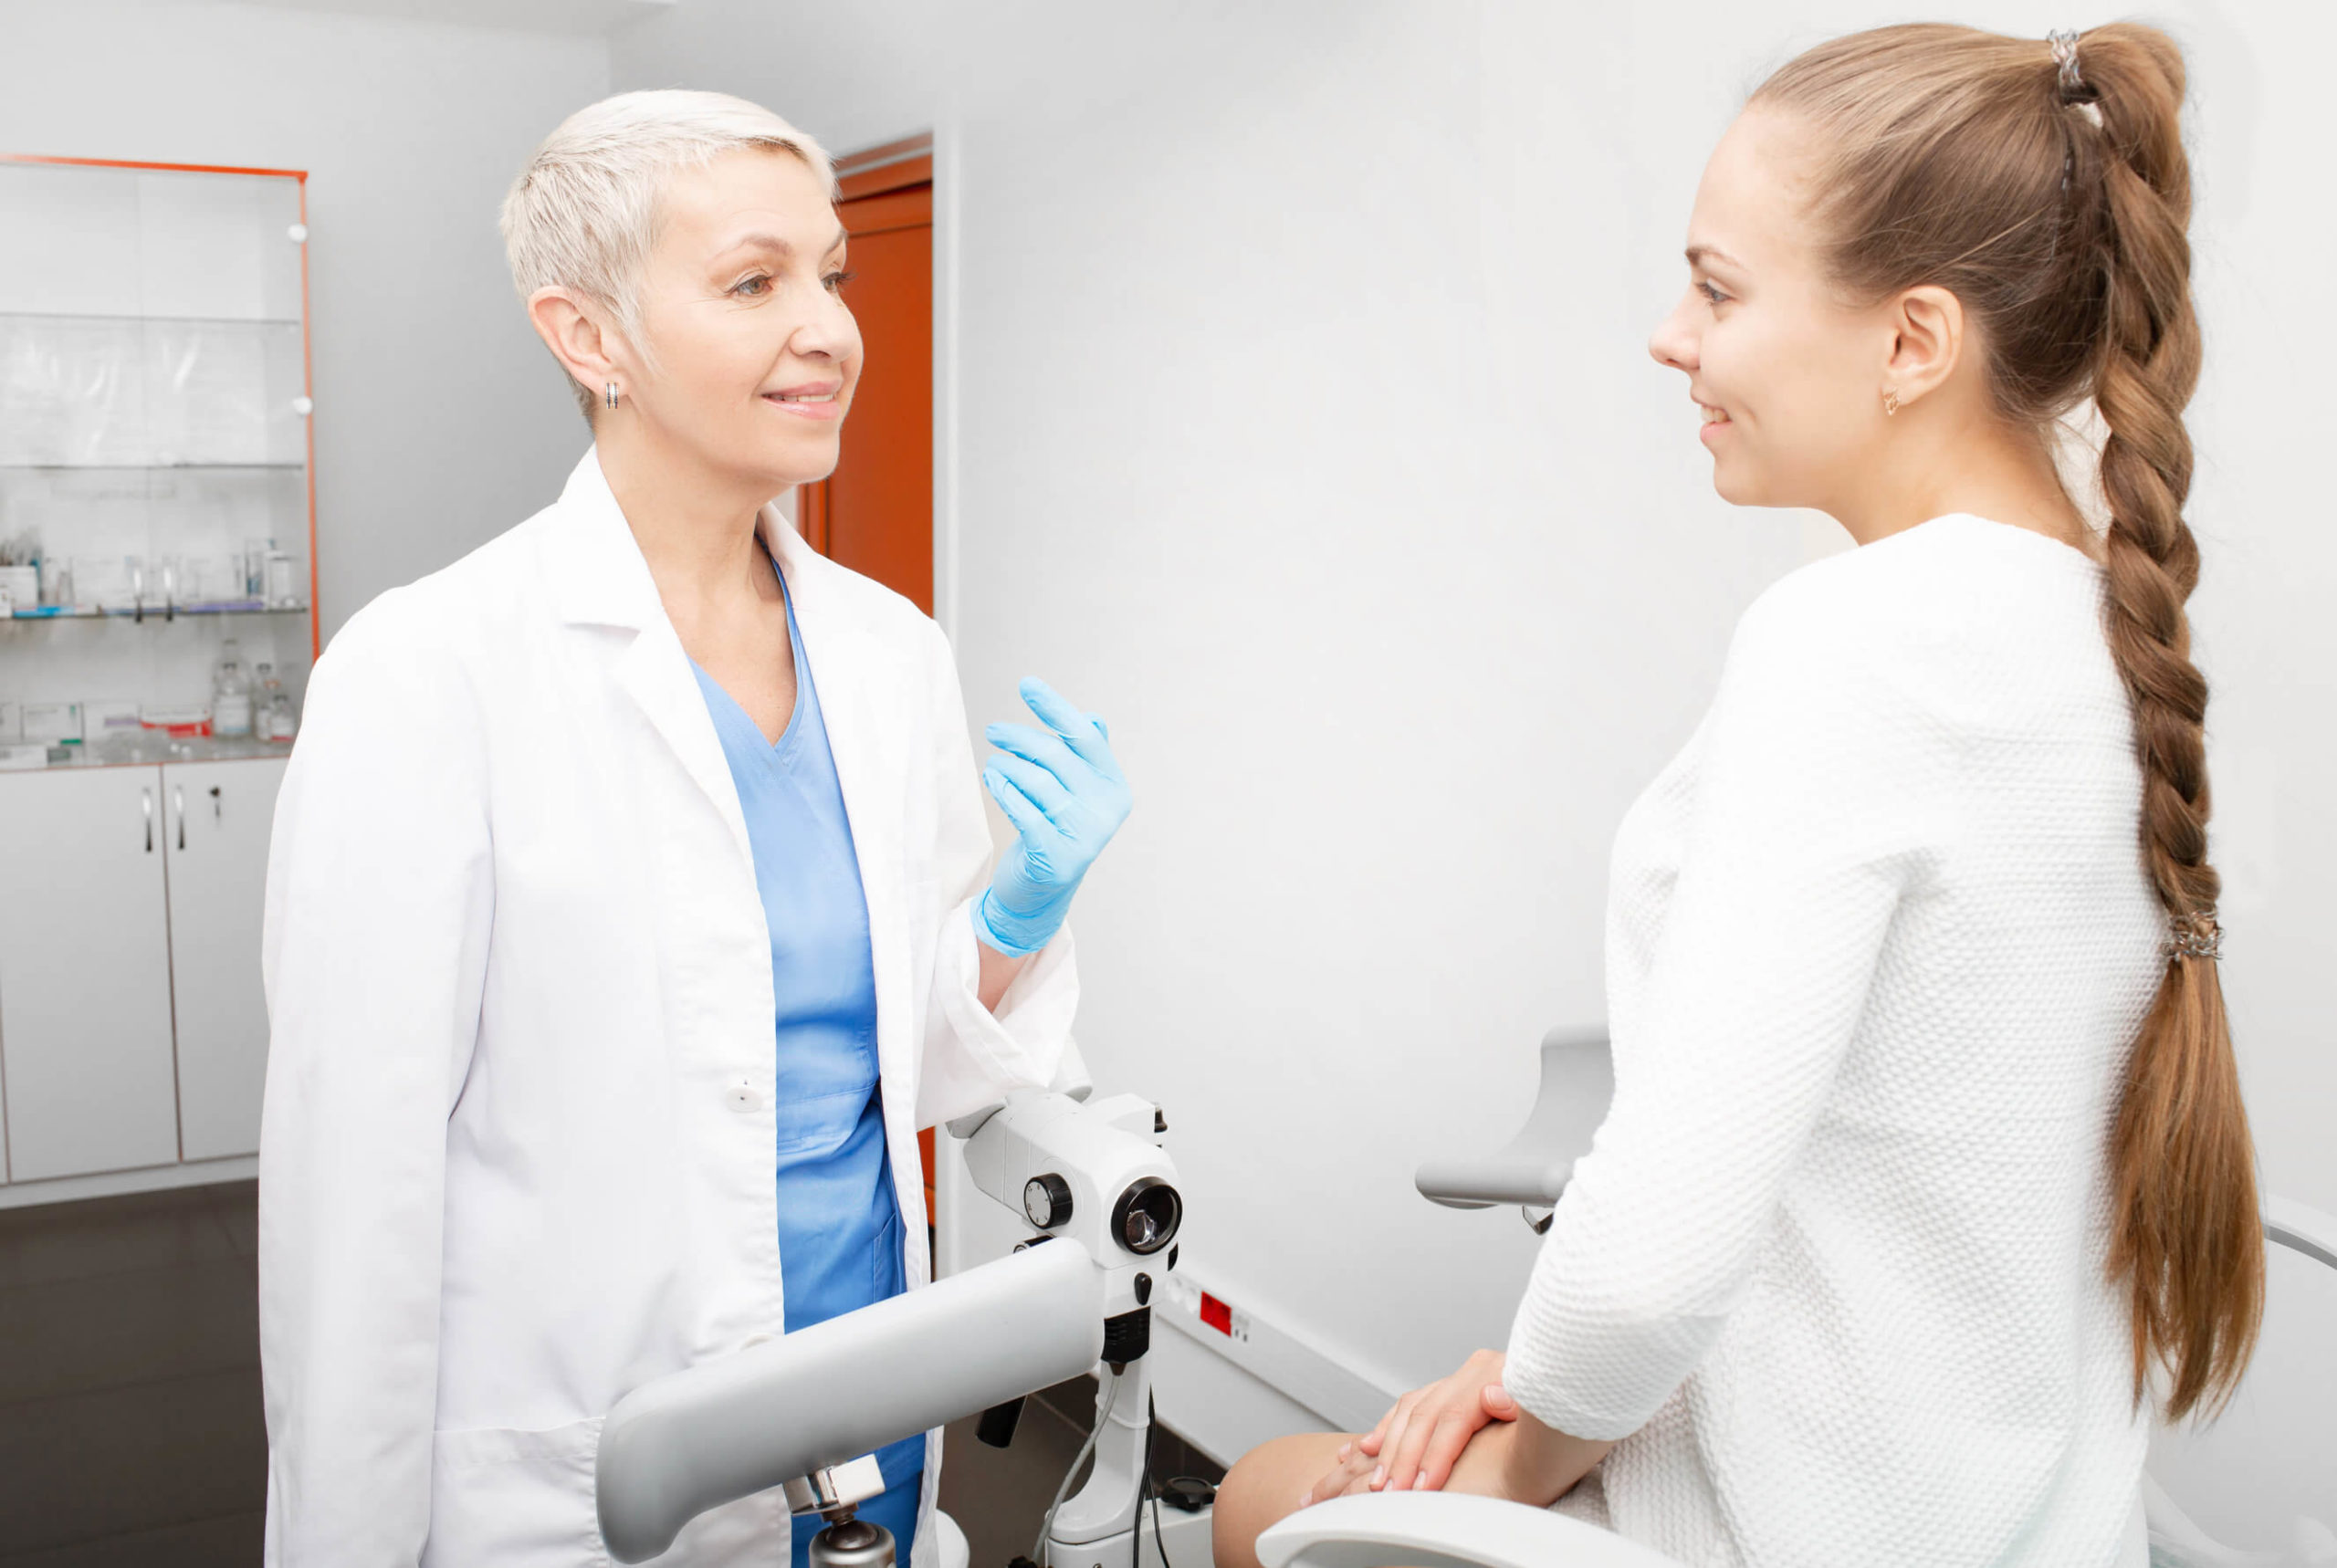 Tips to Make Your Next Pap Smear Easier